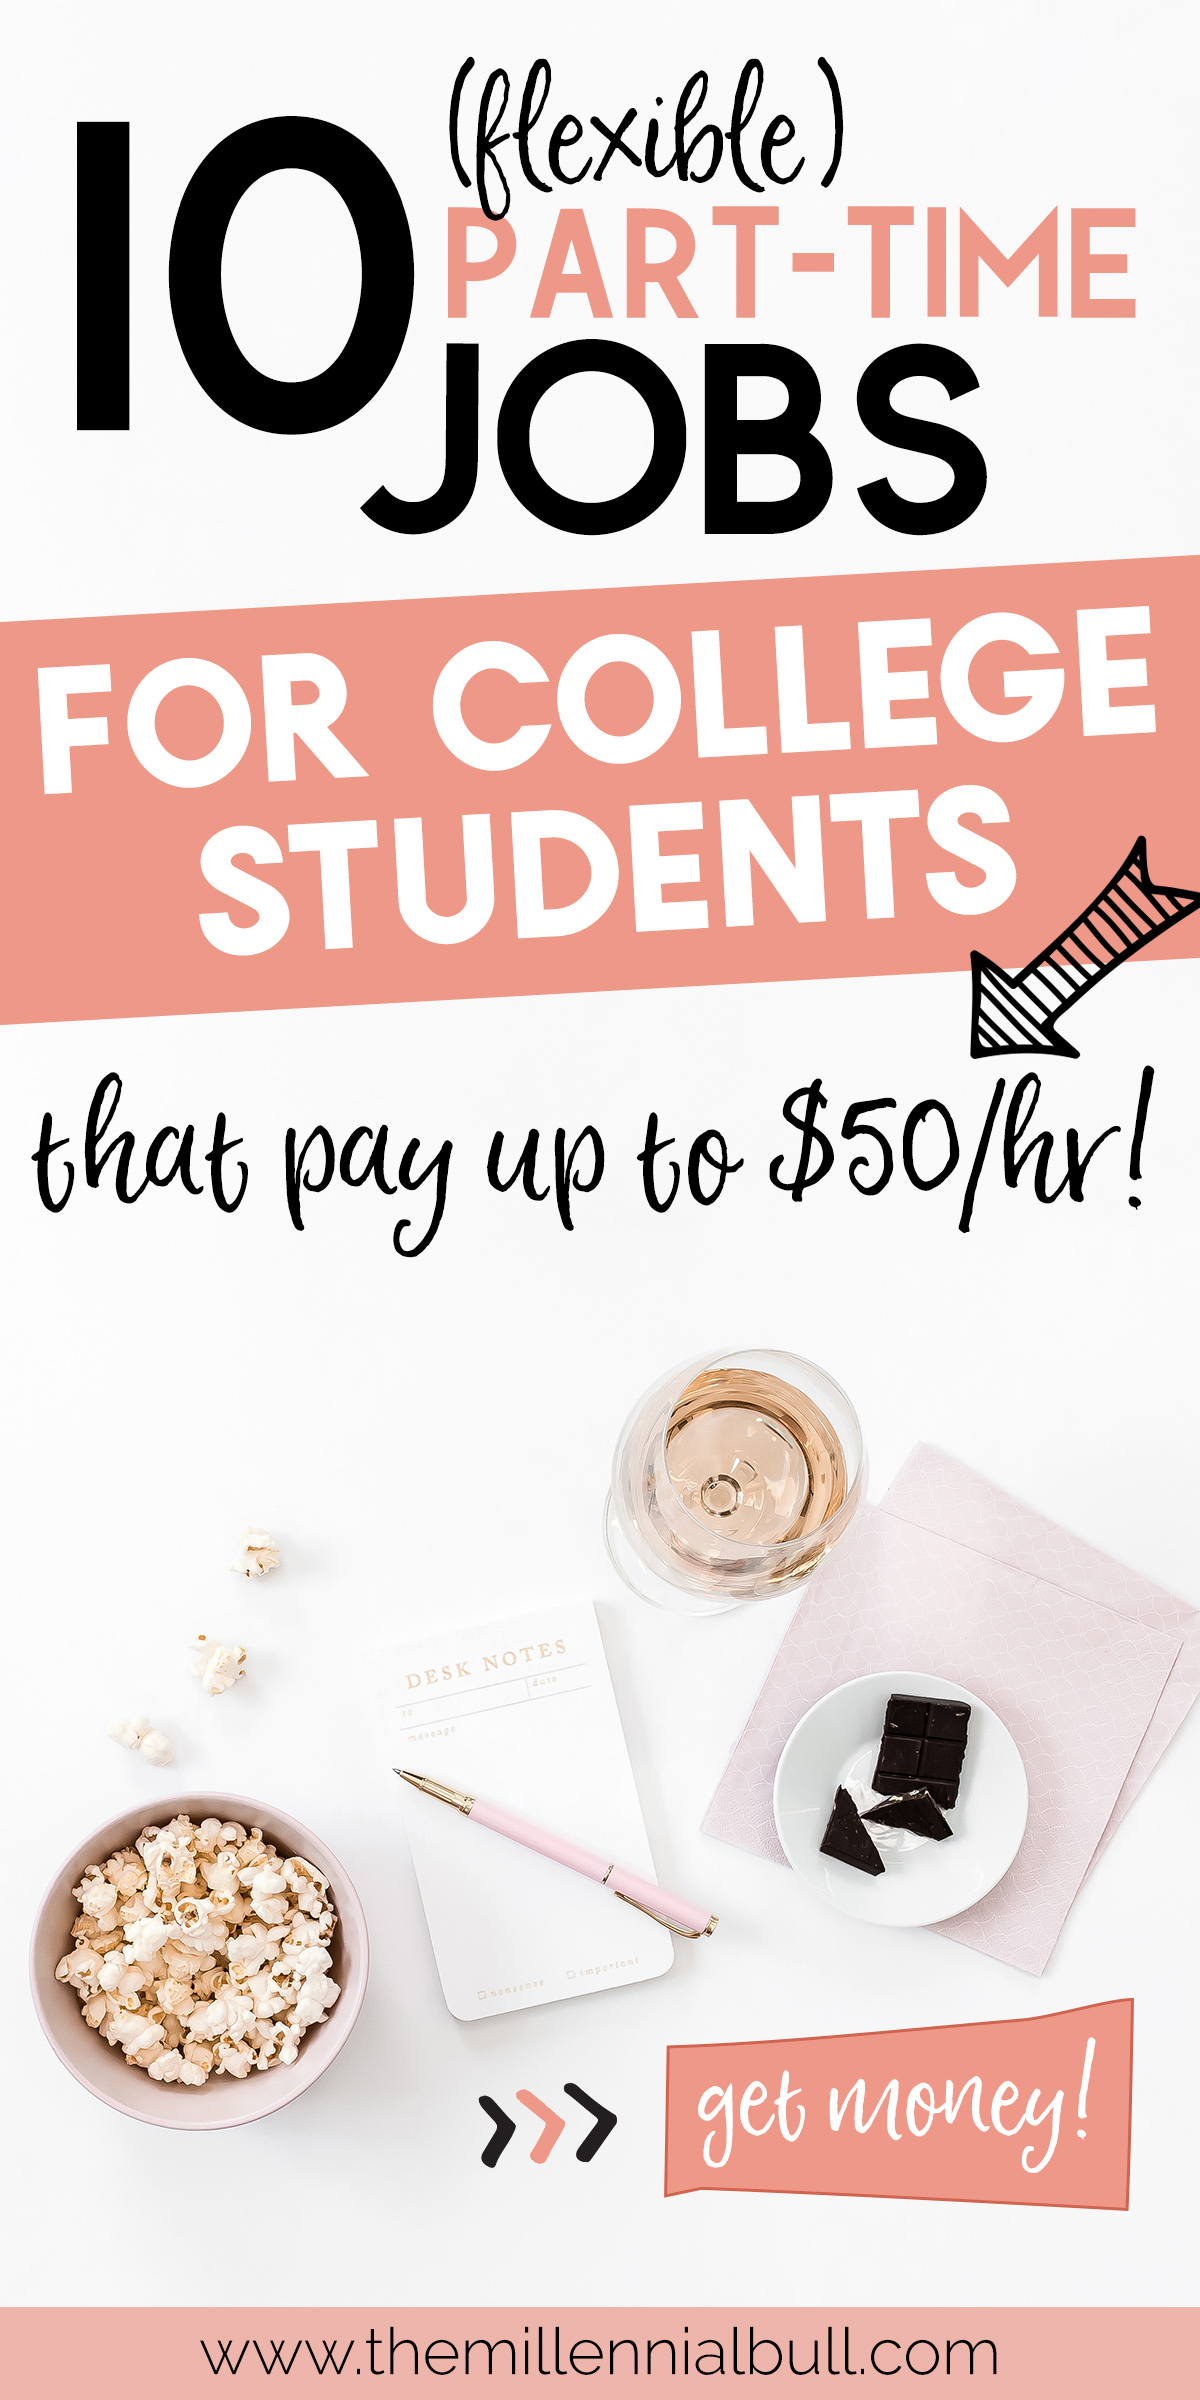 10+ awesome part time job for college students. Schedule got you down? There are many ways you can find high paying jobs while going to school, both online and in person! Create your own fun and flexible work schedule by starting your own side hustle! #sidehustleideas #onlinejobs